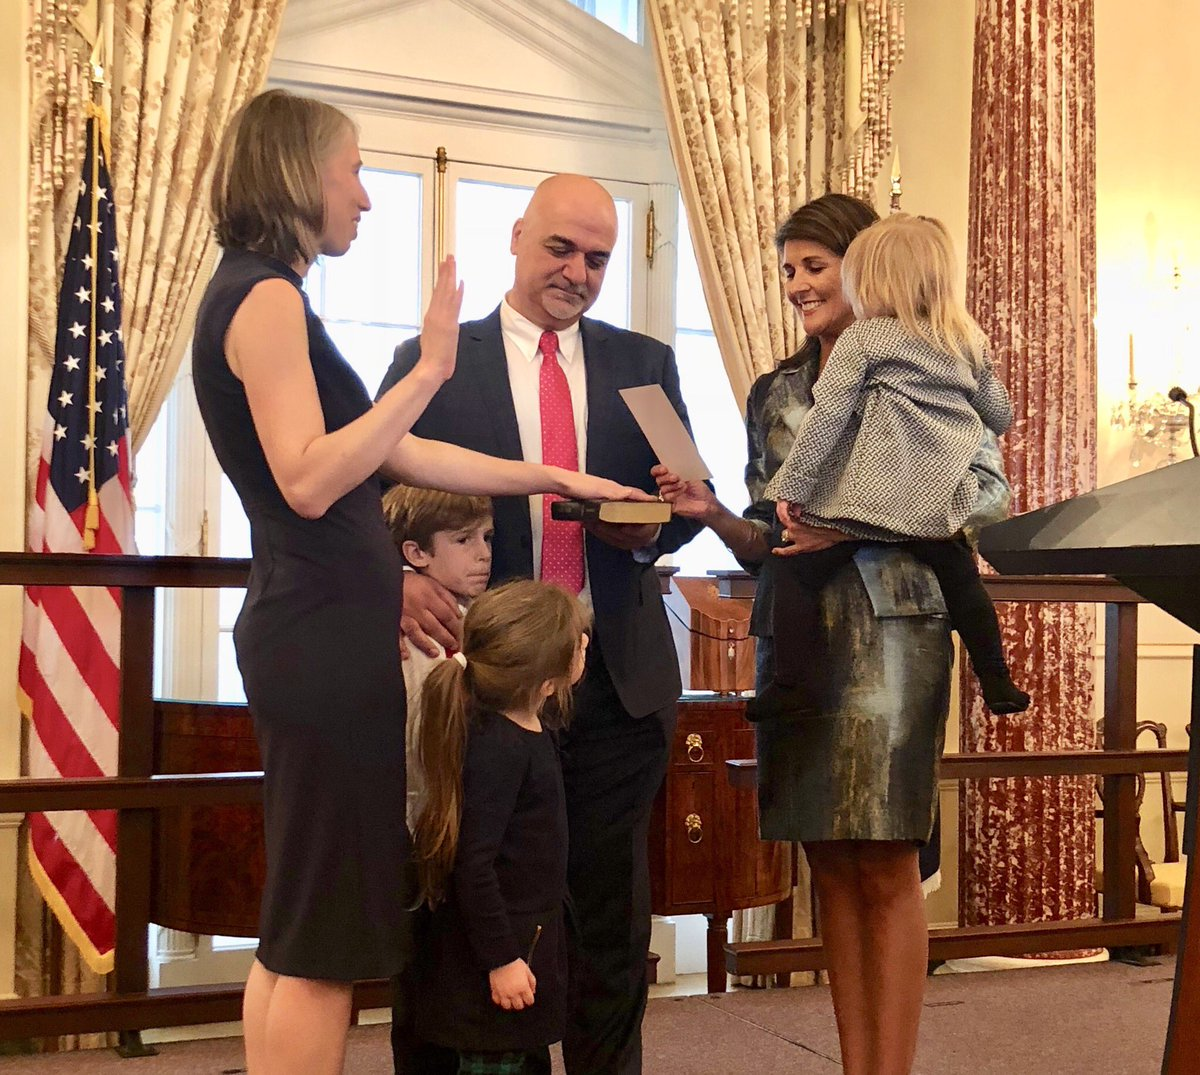 RT @USUN: We were honored to swear in Cherith Norman Chalet as our new U.S. Ambassador for UN Management &amp; Reform. She's both a tough negotiator &amp; proven reformer. We couldn't ask for a better representative to fight waste &amp; abuse while advocating for America's best interest @UN.<br>http://pic.twitter.com/JcwQ3HPotT